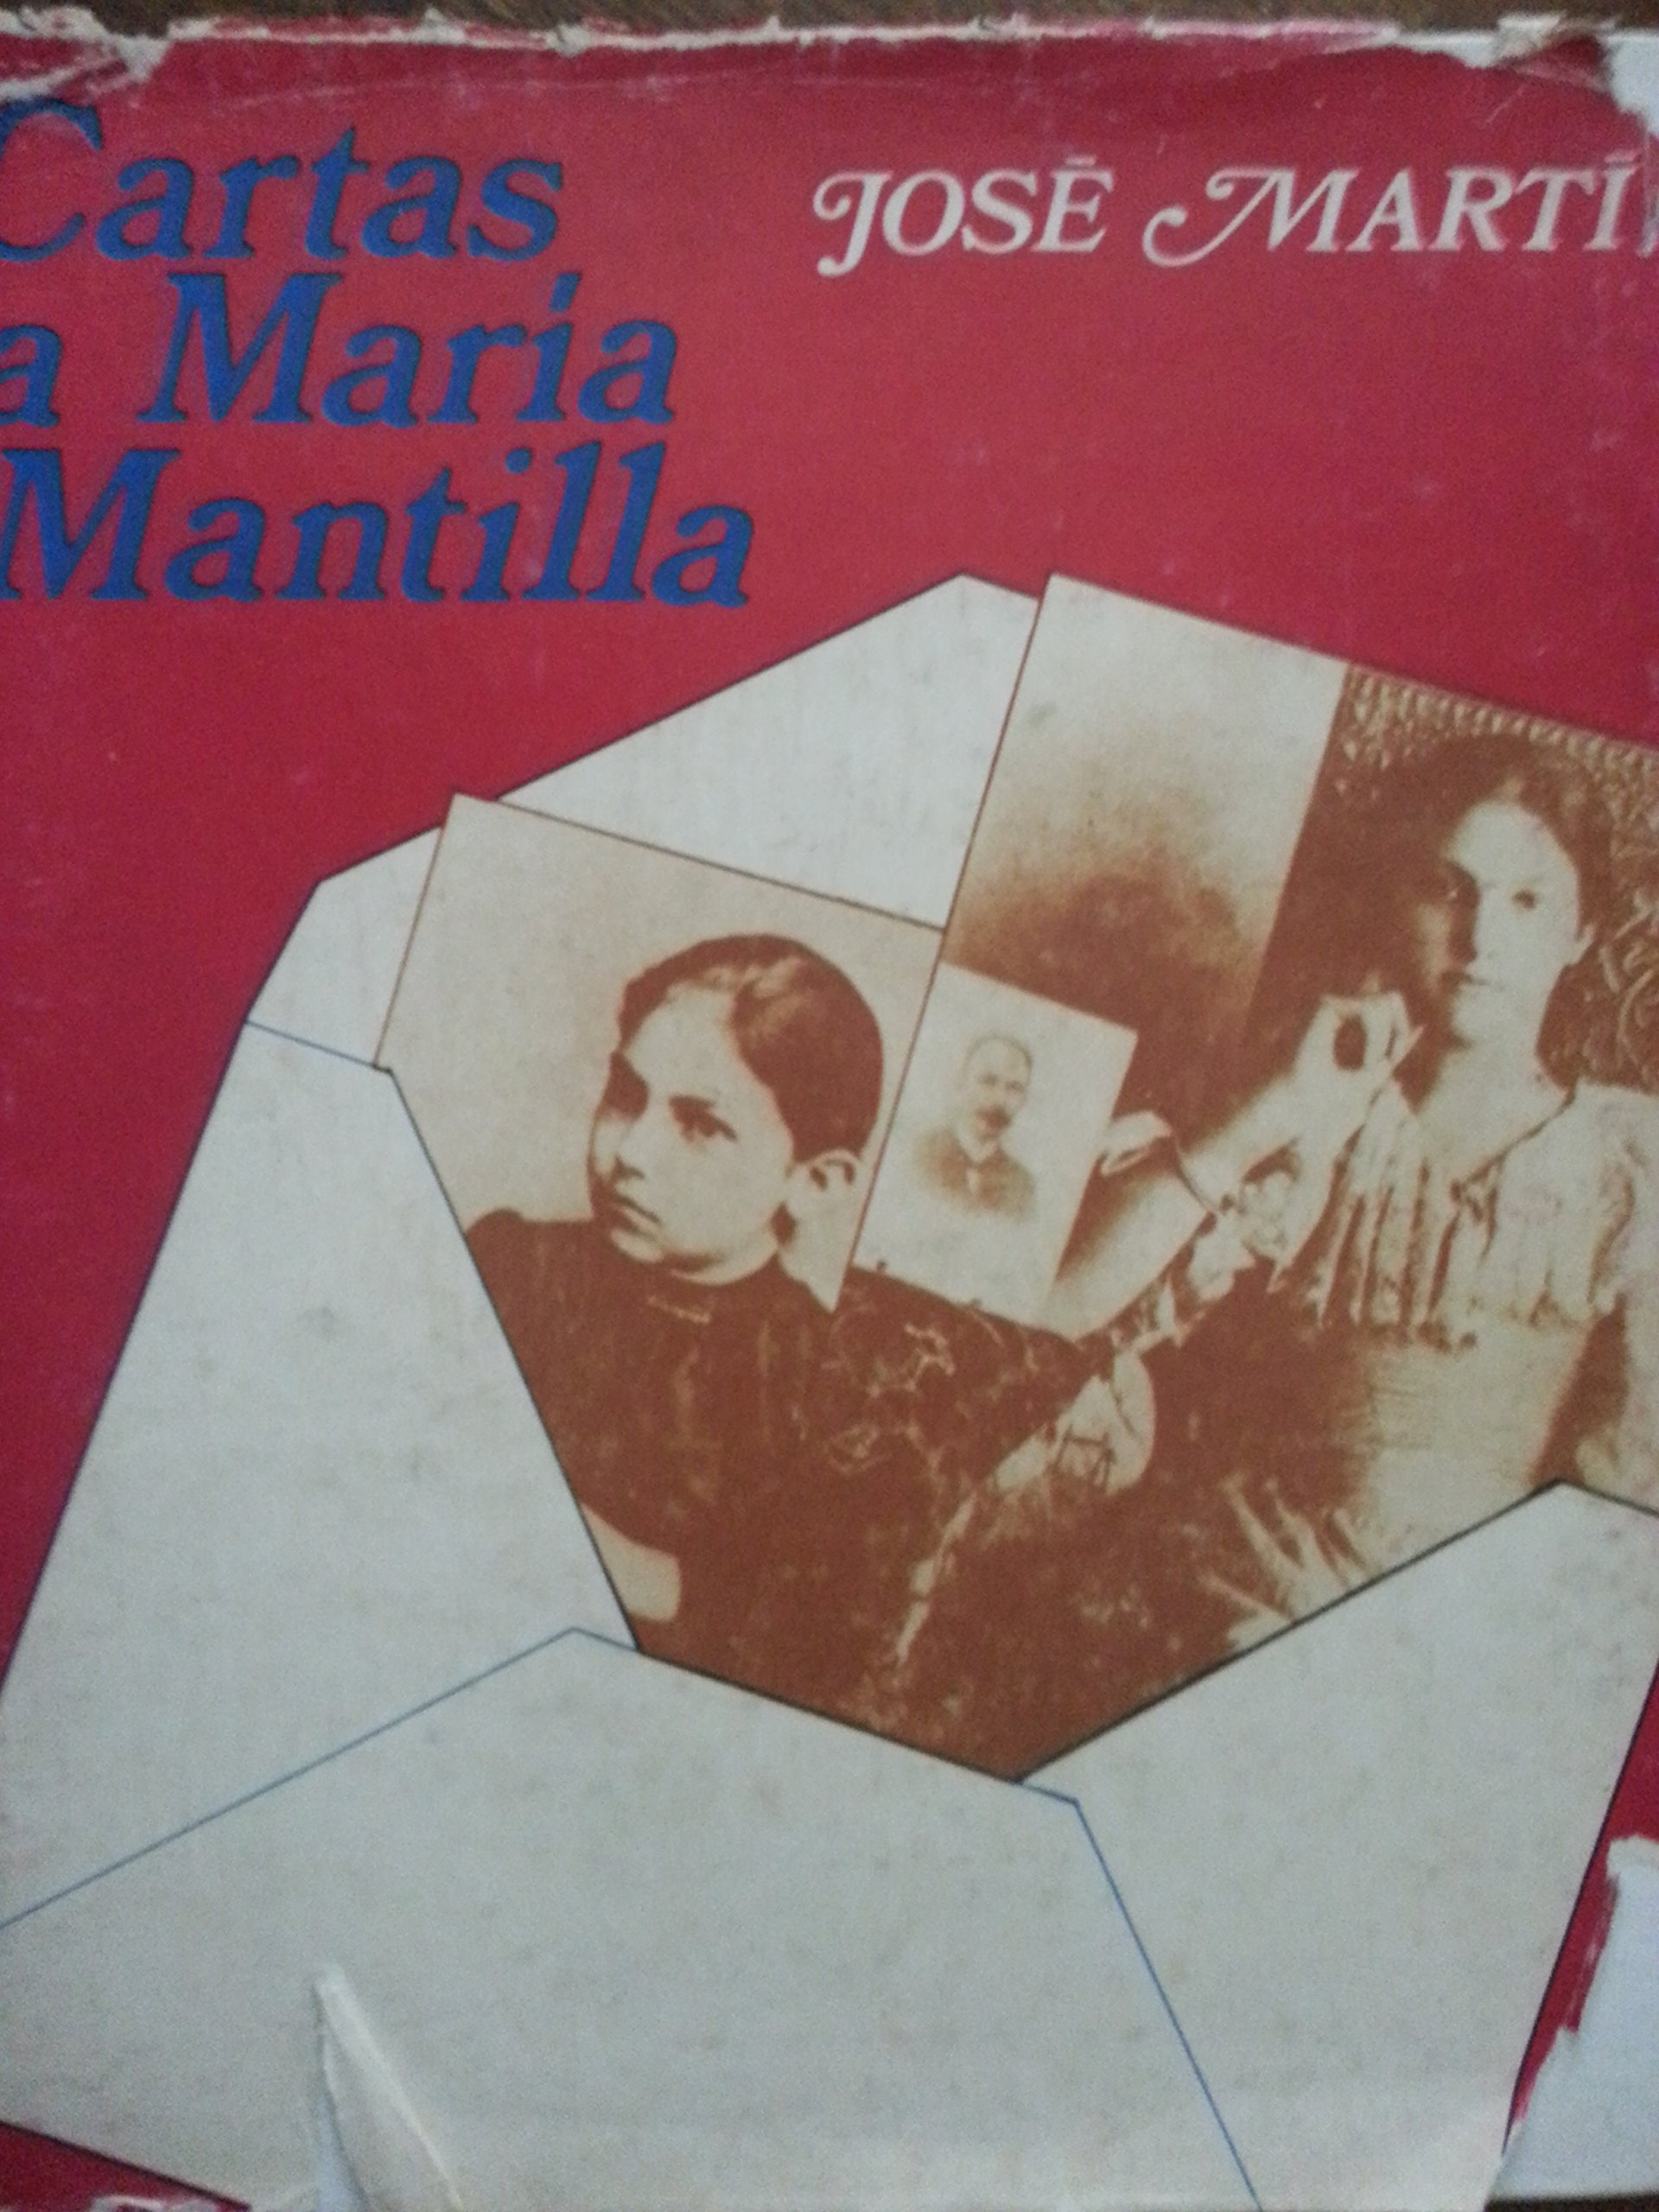 Jose marti, cartas a maria mantilla, habana, cuba, 1982.: jose marti: Amazon.com: Books